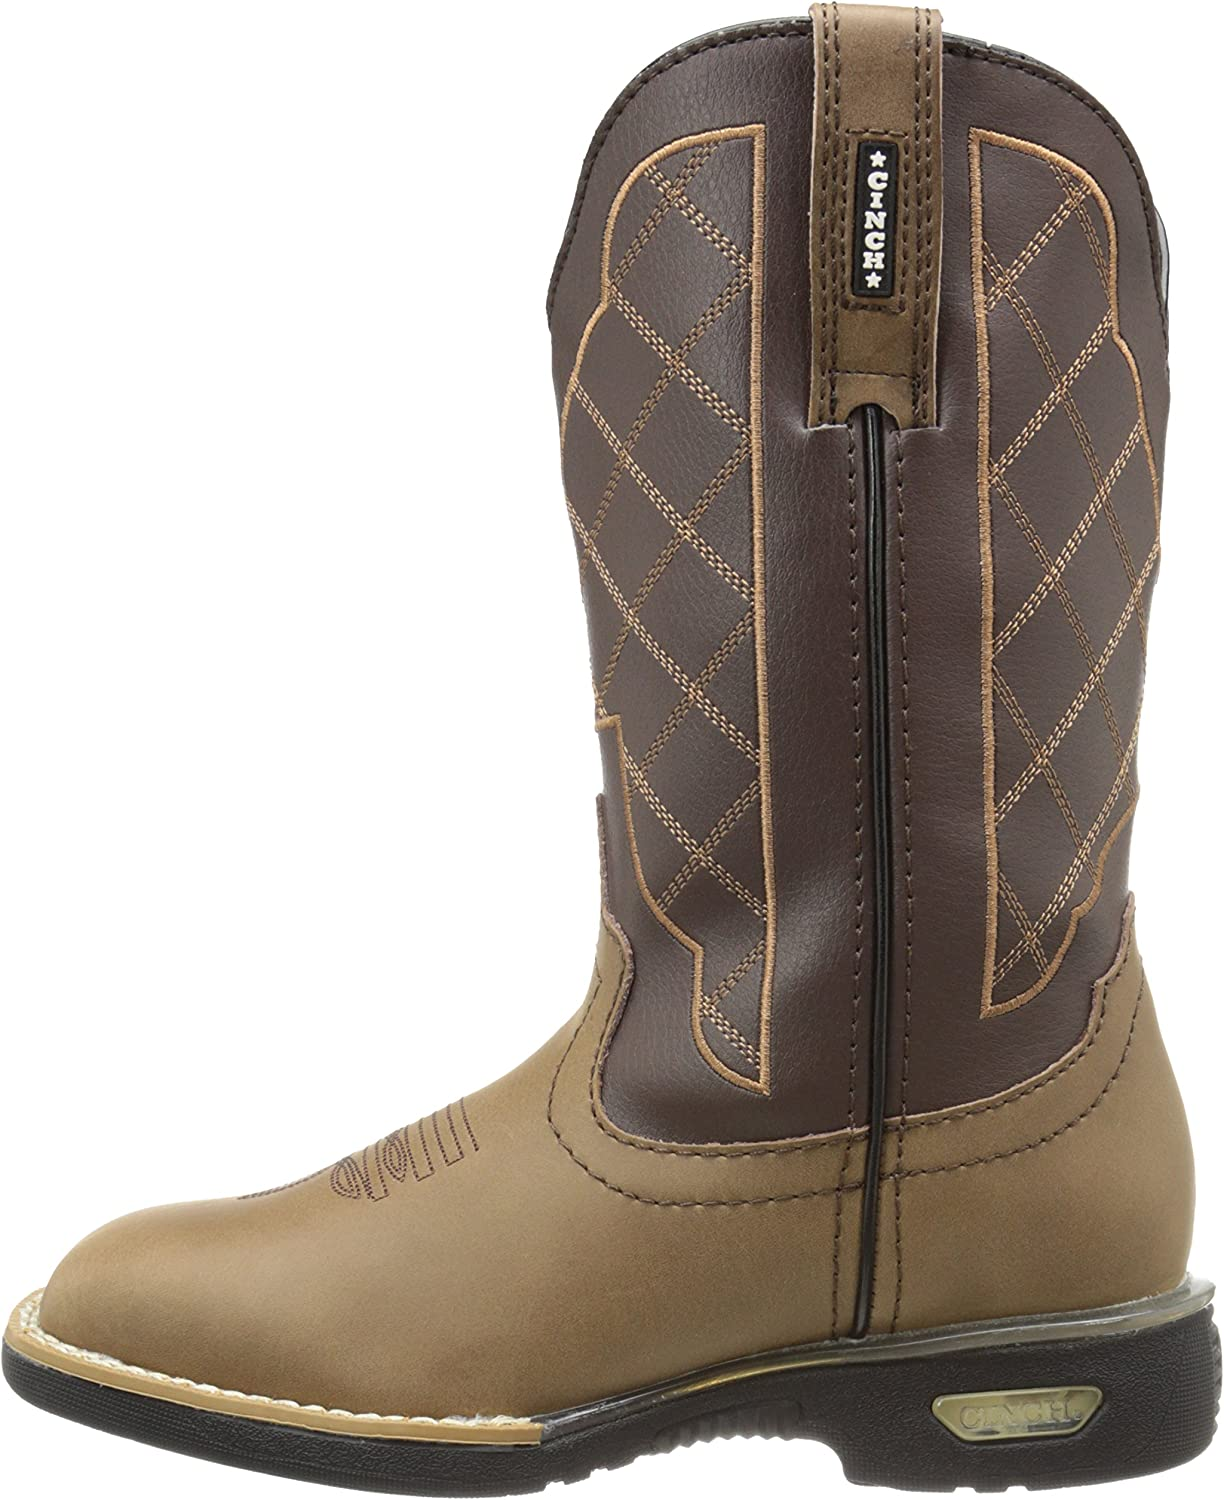 Cinch Trace Boot Toddler//Little Kid//Big Kid